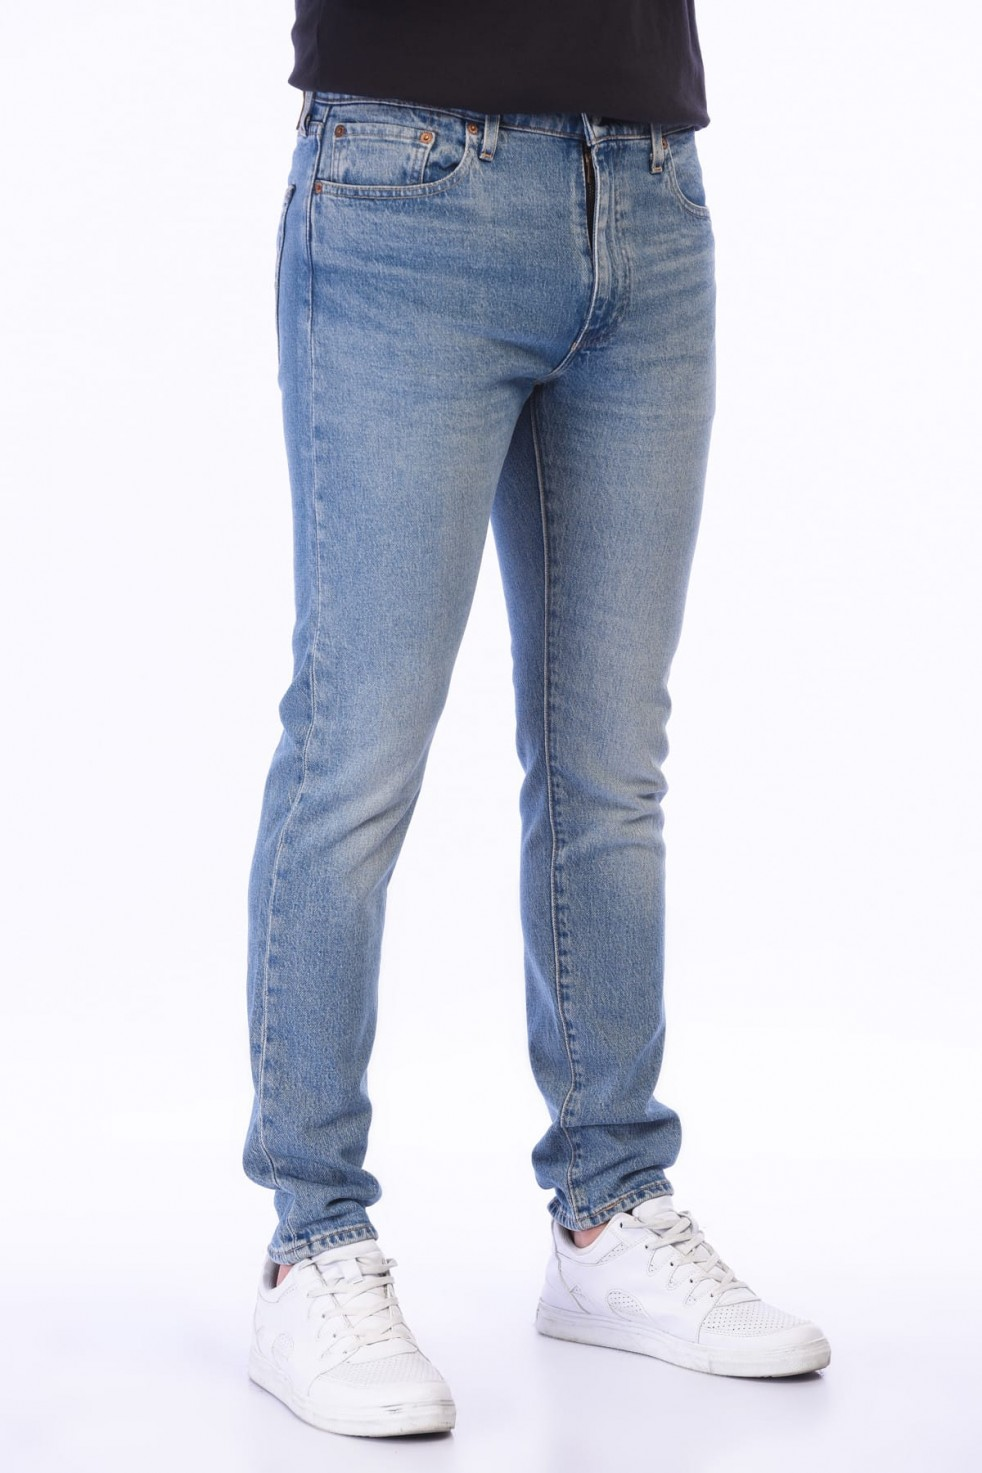 Levis Erkek Jean Pantolon 512 Slim Taper Fit  28833-0195